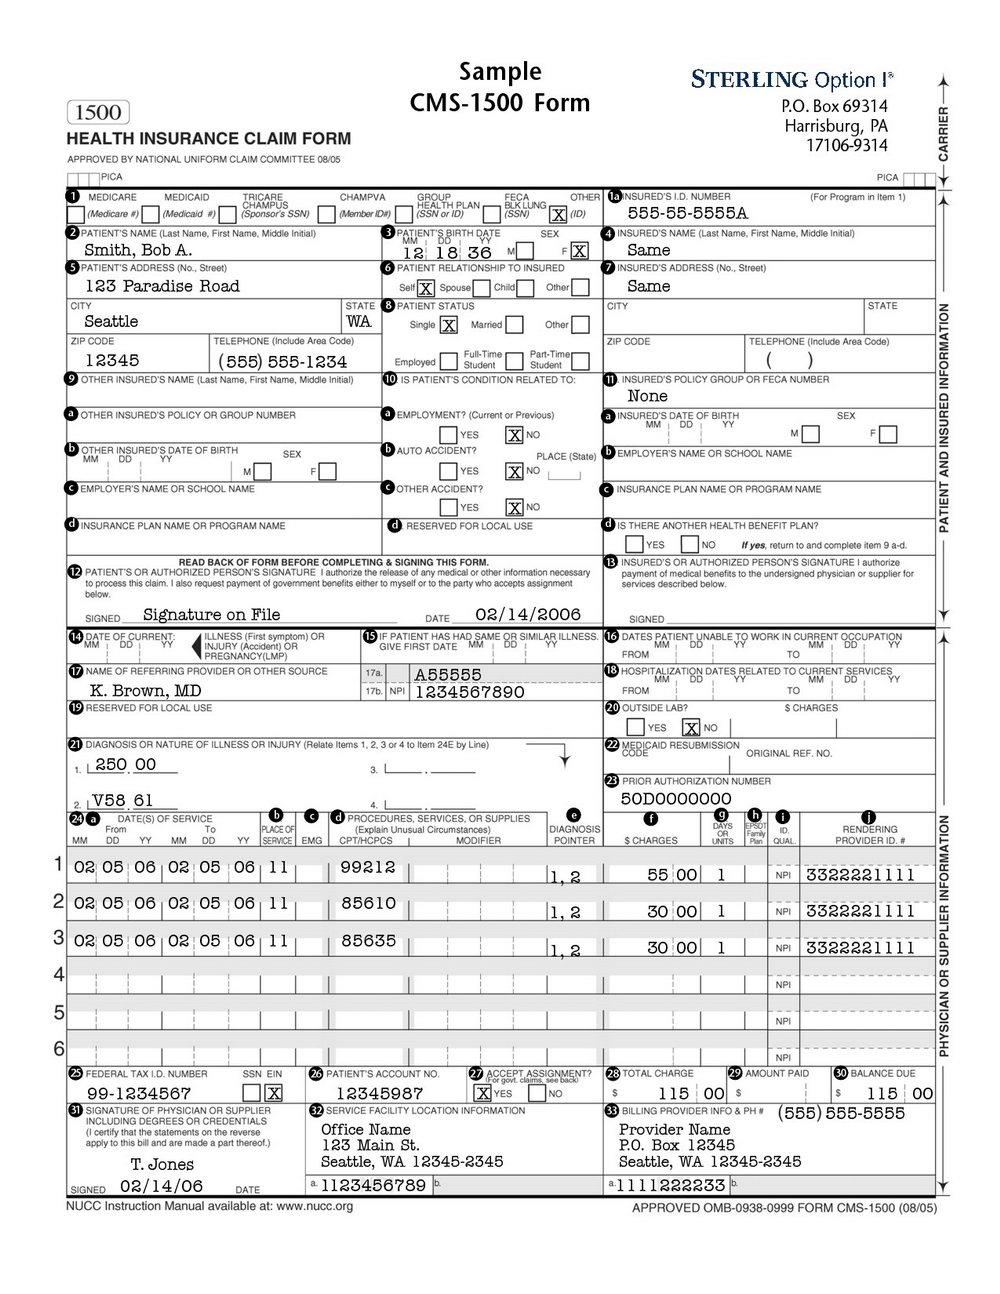 1500 Health Insurance Claim Form Template